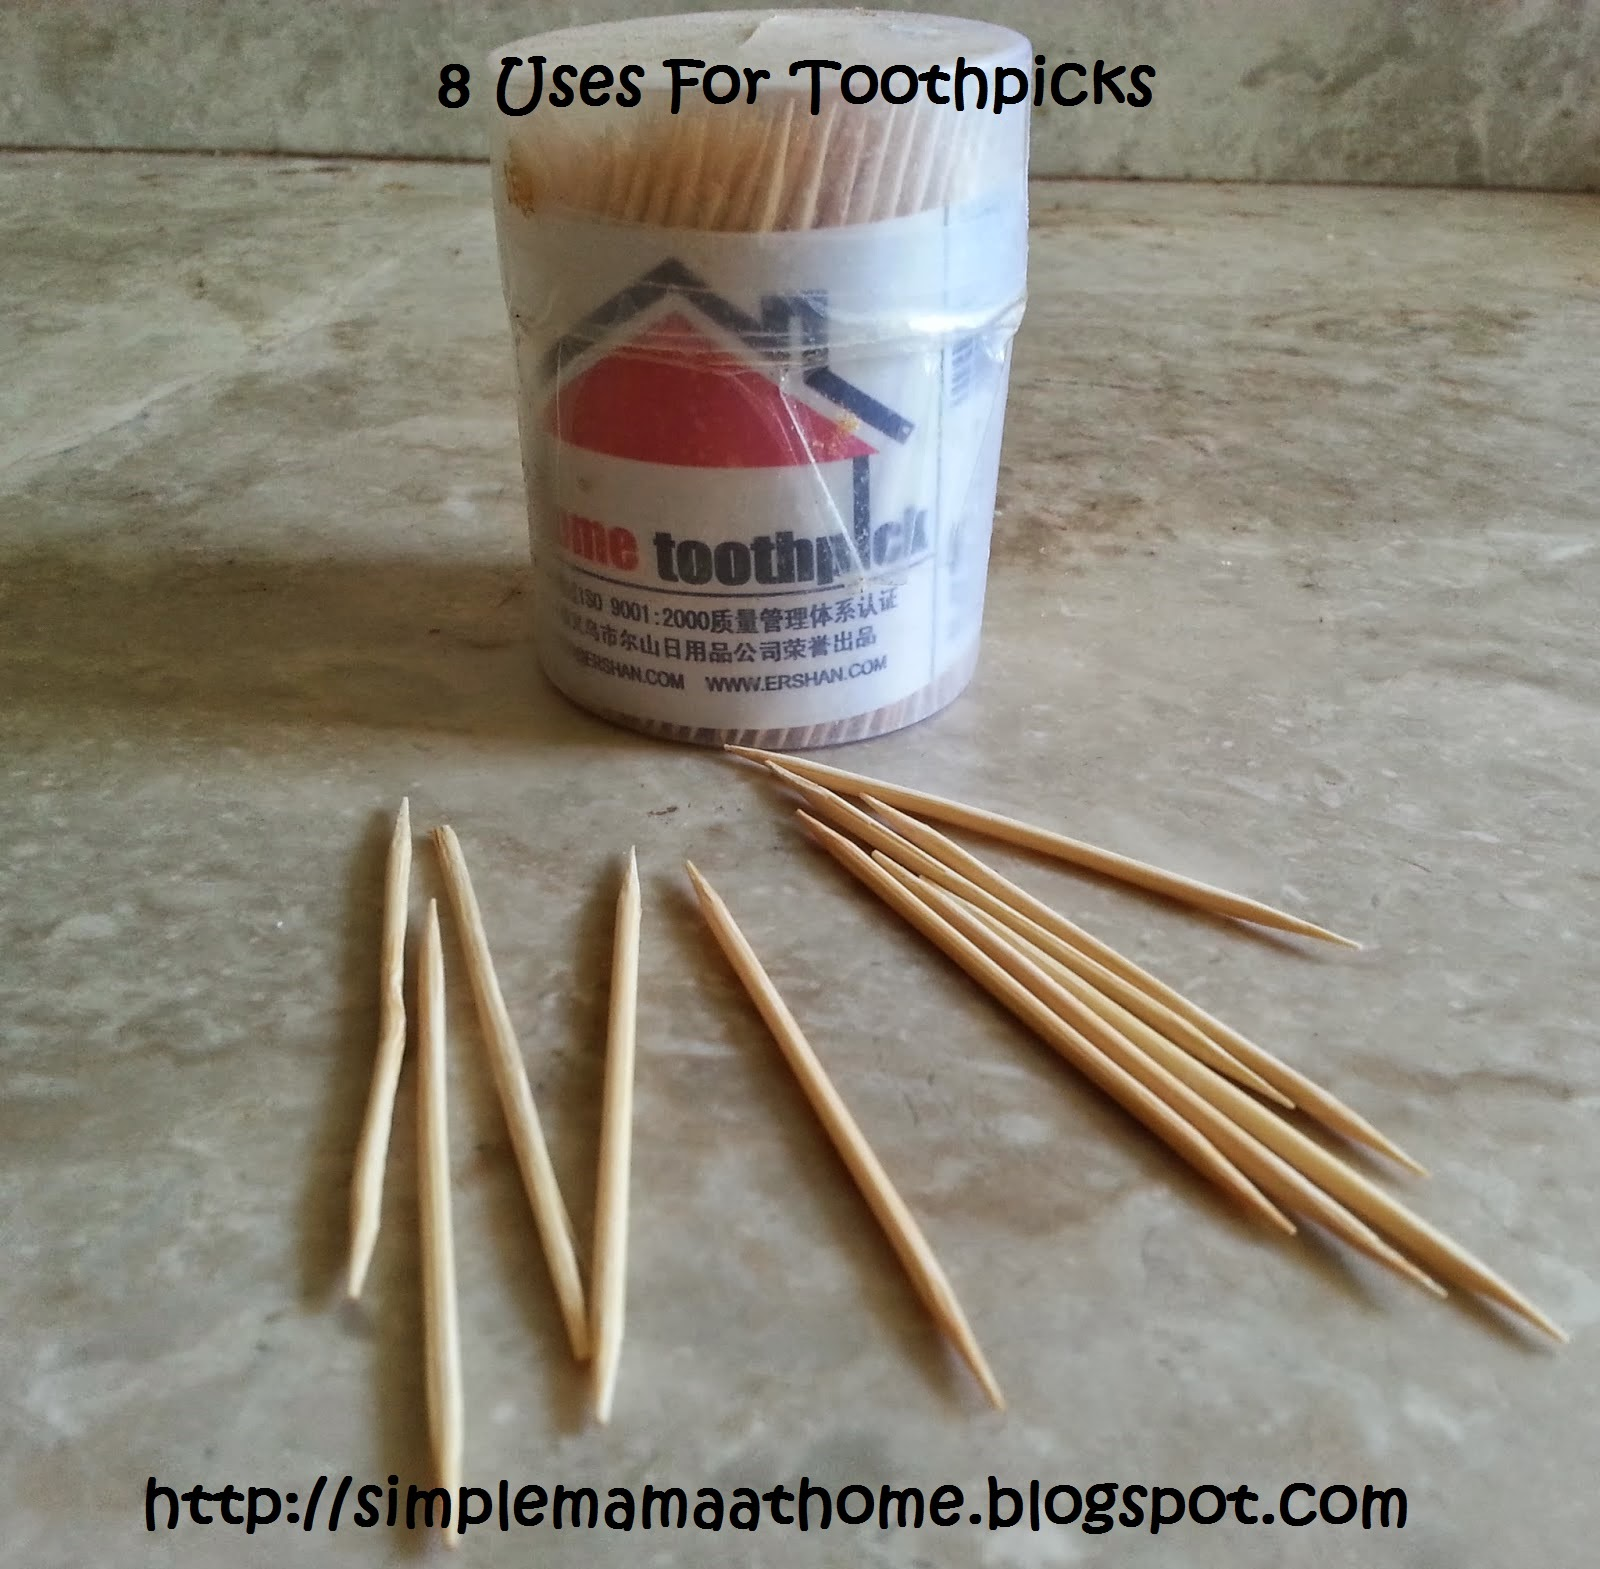 8 Uses For Toothpicks